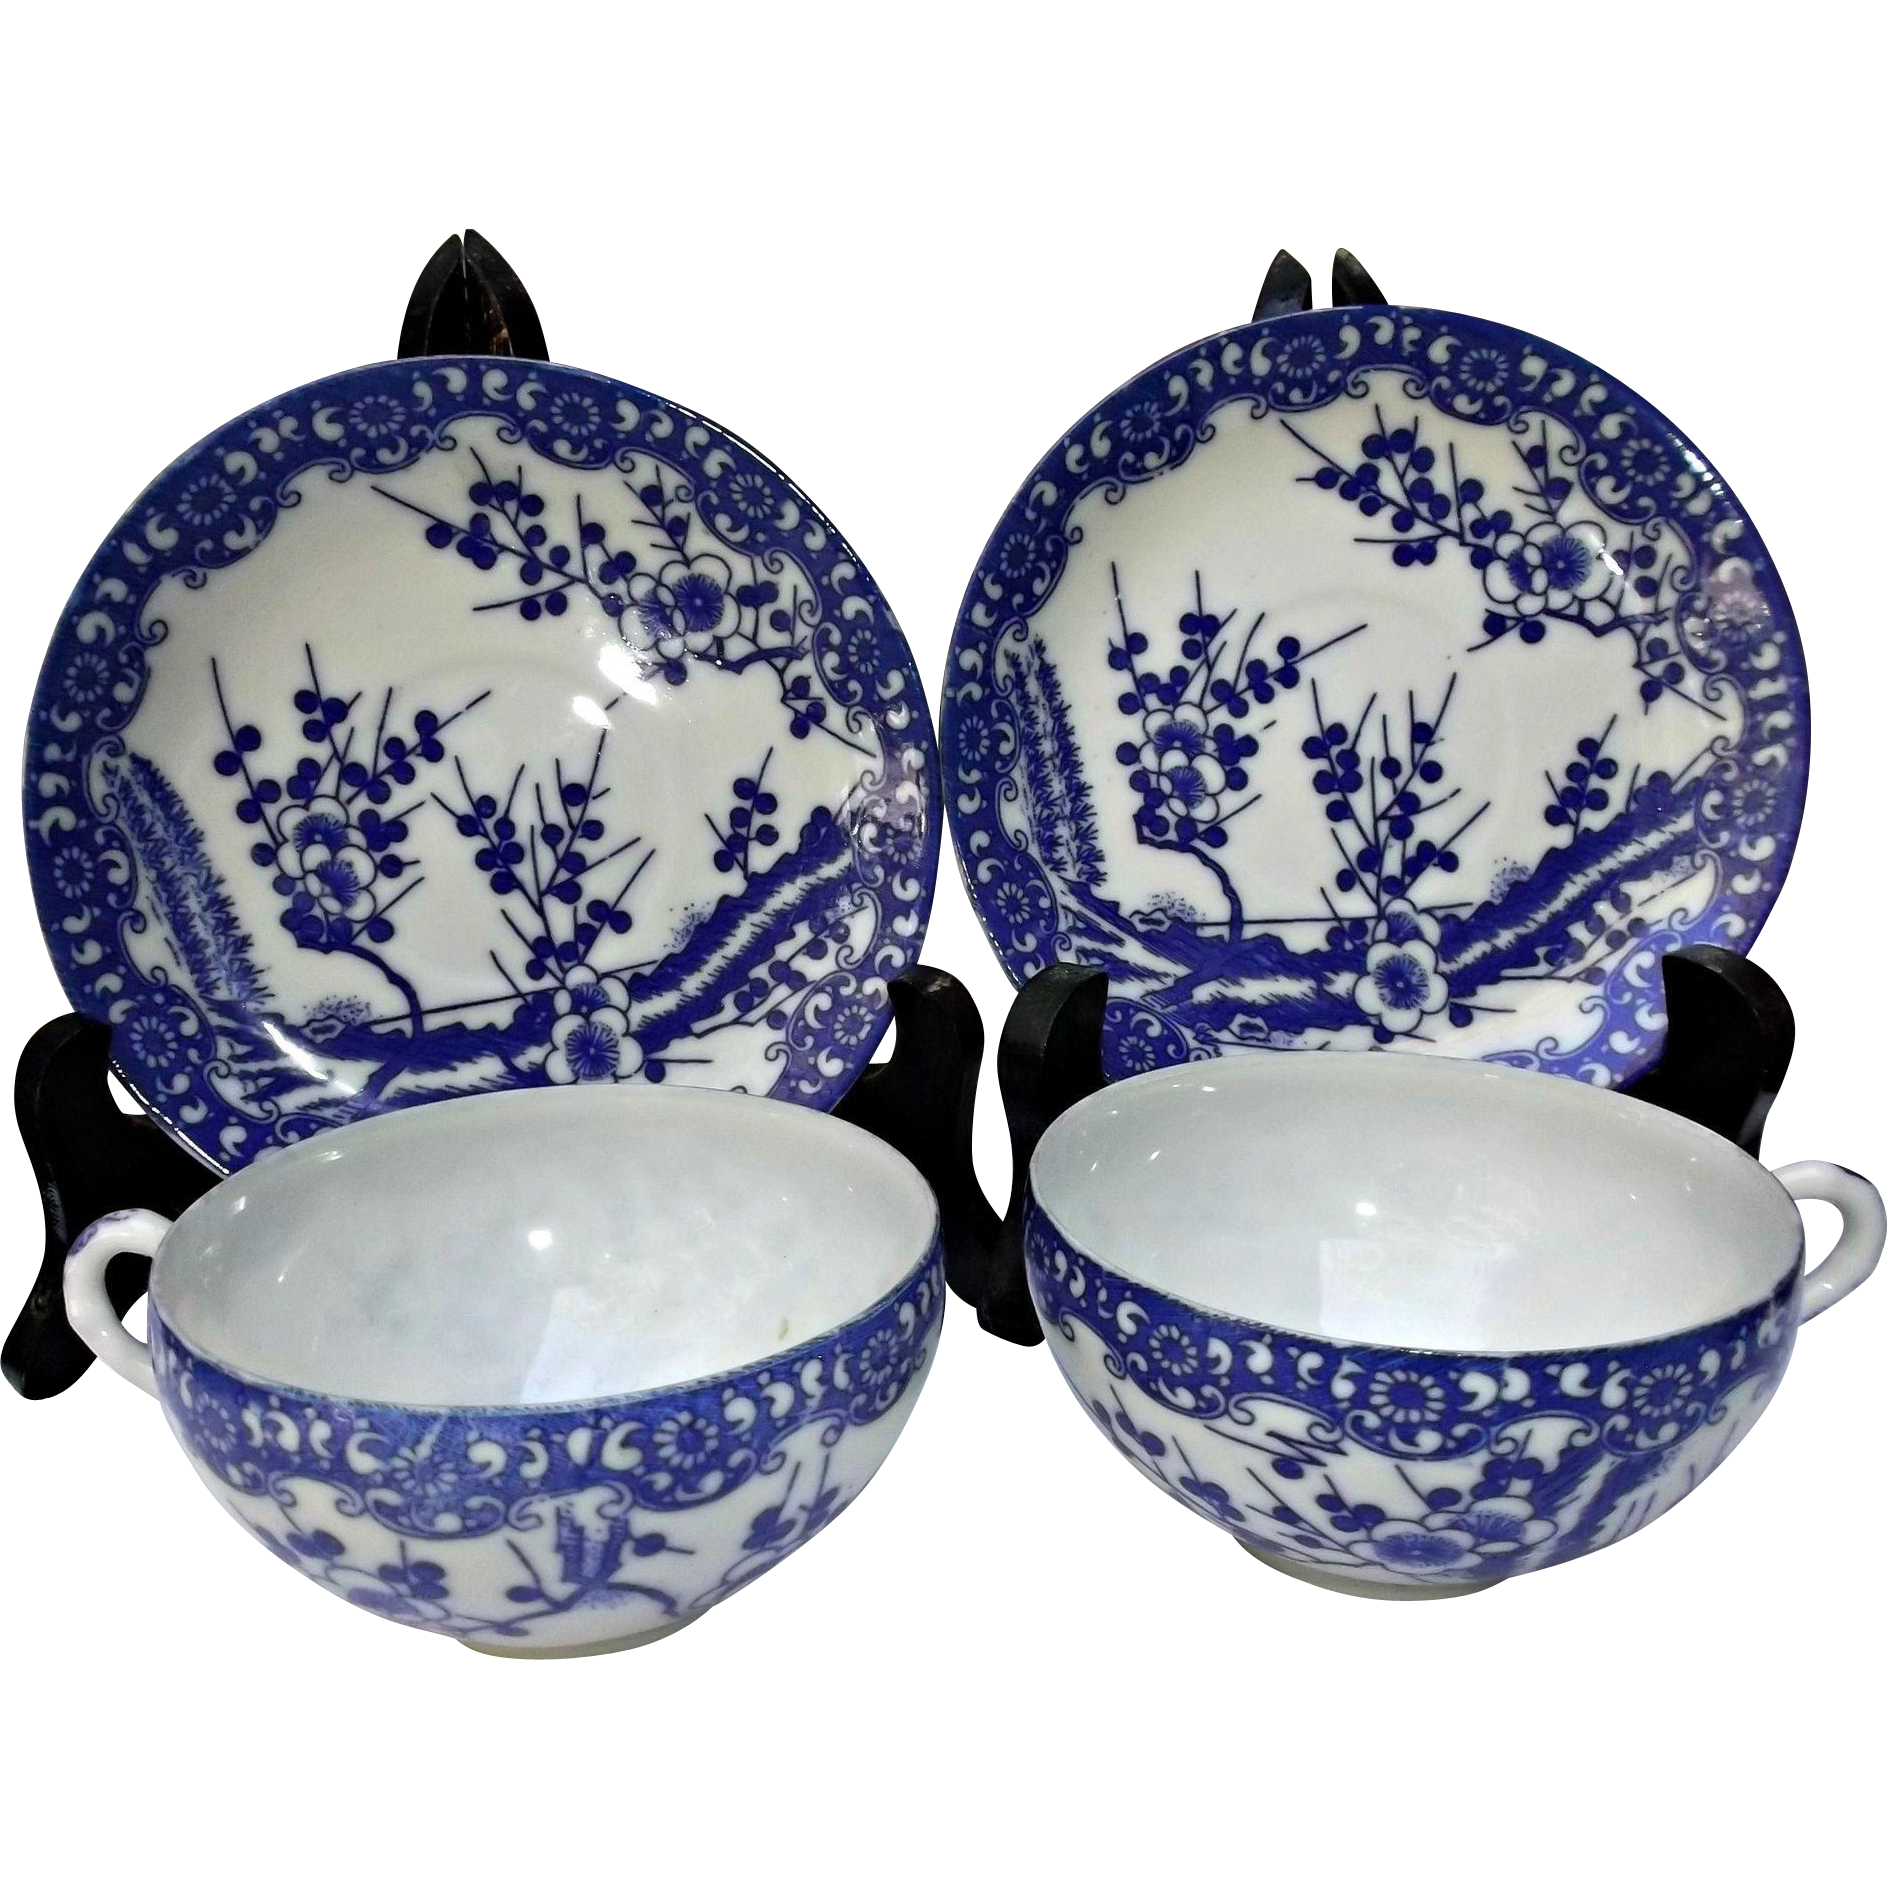 Vintage Asian Cherry Blossoms Cups Saucers Blue White Porcelain